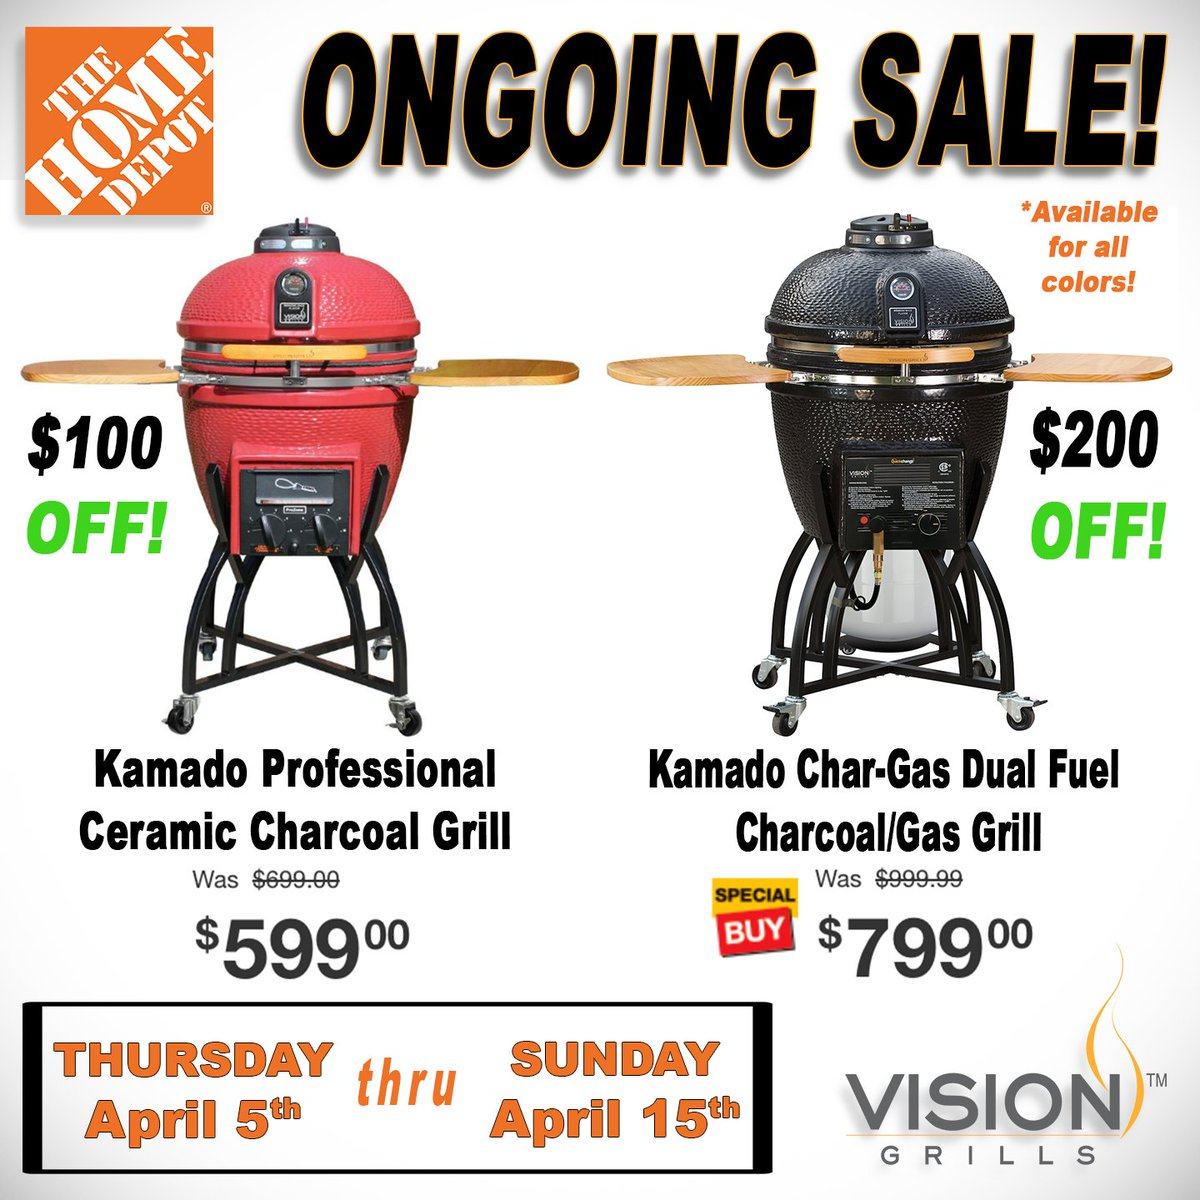 Check Out The Here Https Www Homedepot S Vision 2520grills Ncni 5 Visiongrills Do Grilling Lfiestyle Ping